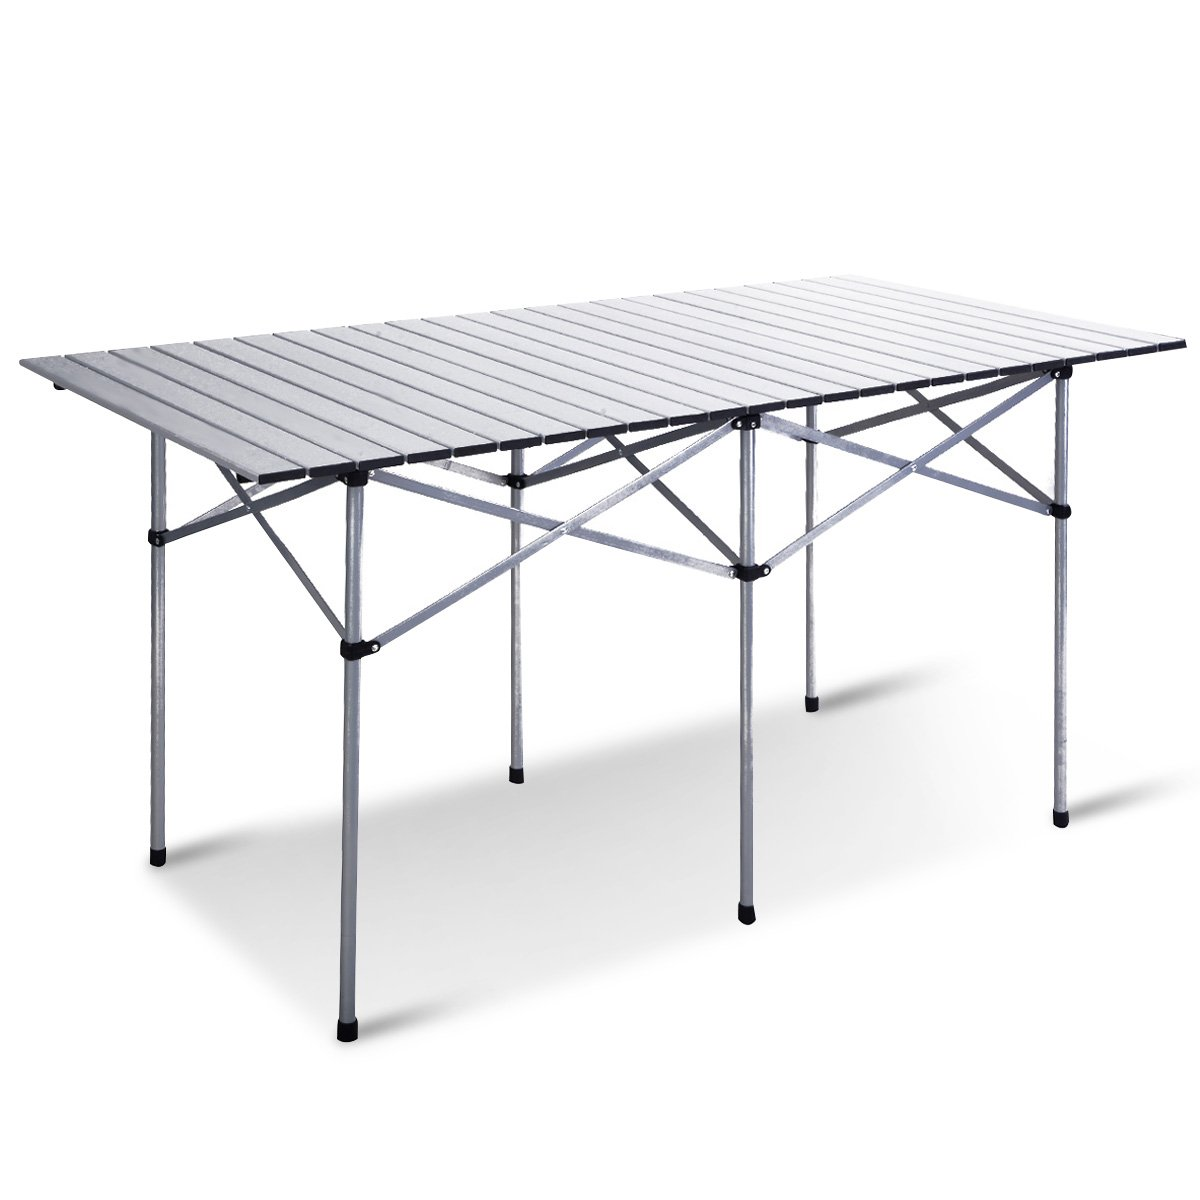 Giantex Roll Up Portable Folding Camping Square Aluminum Picnic Table w Bag 55